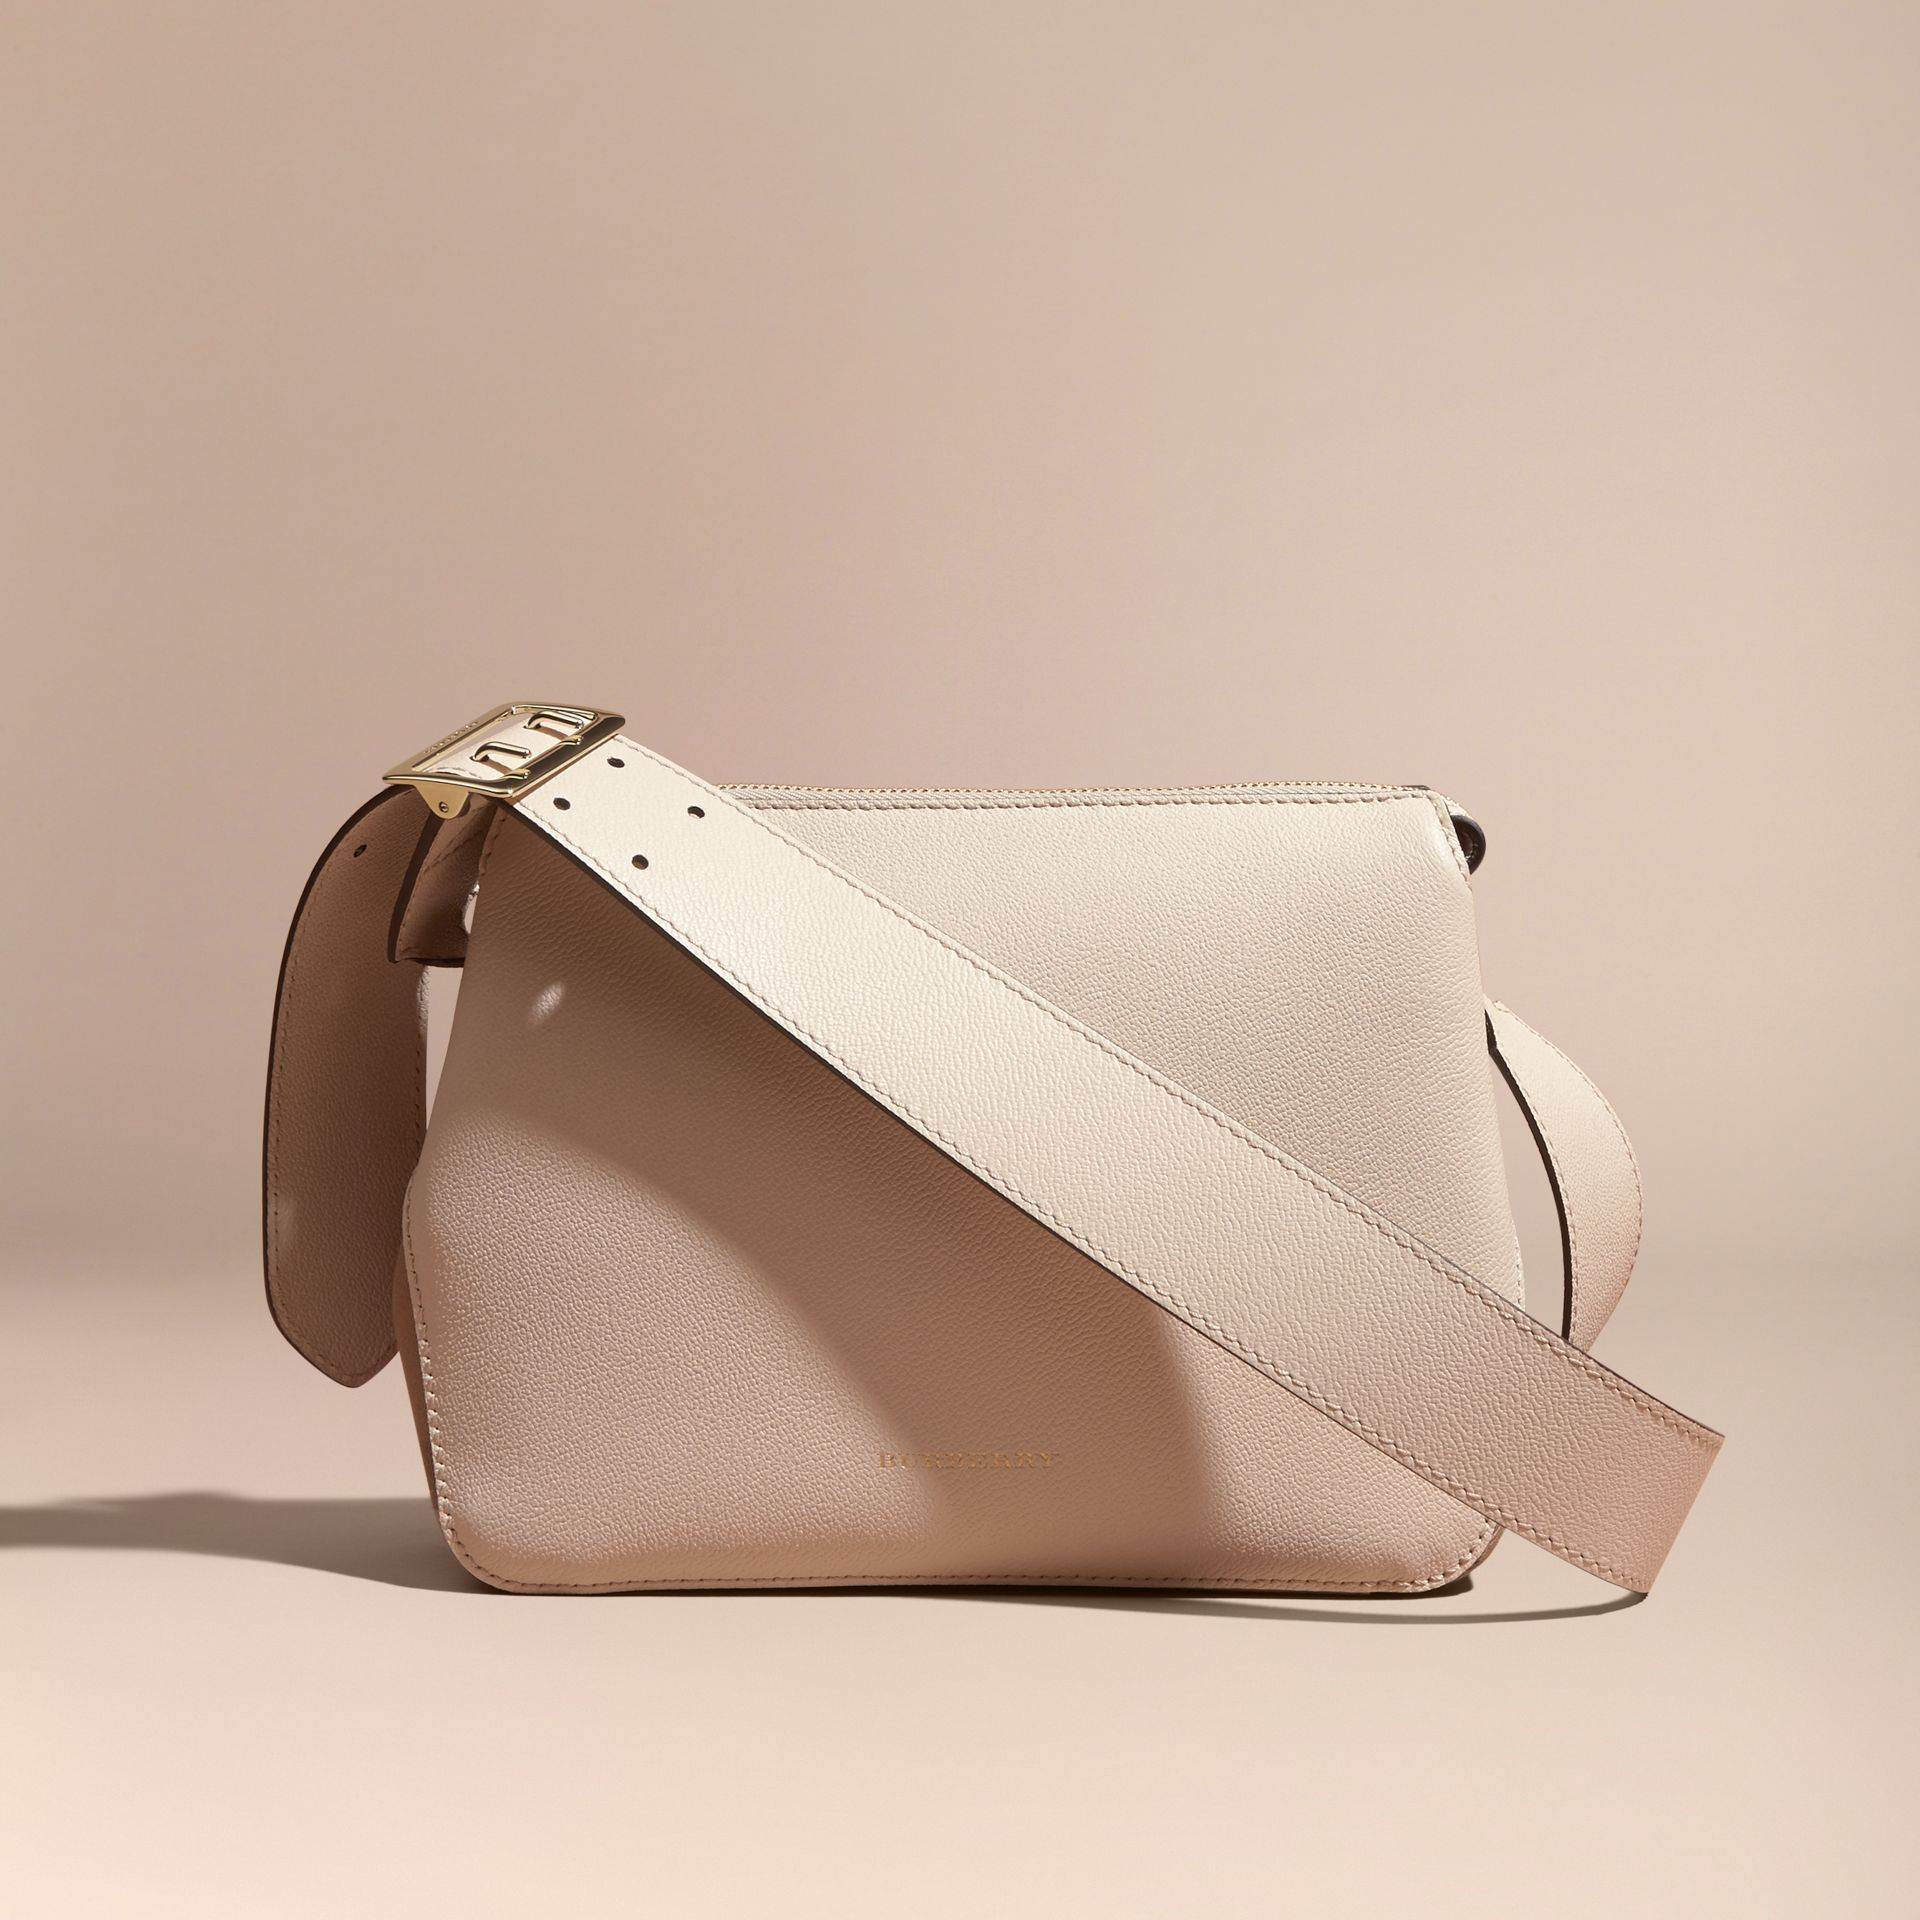 Buckle Detail Leather and House Check Crossbody Bag in Limestone - Women | Burberry - gallery image 7